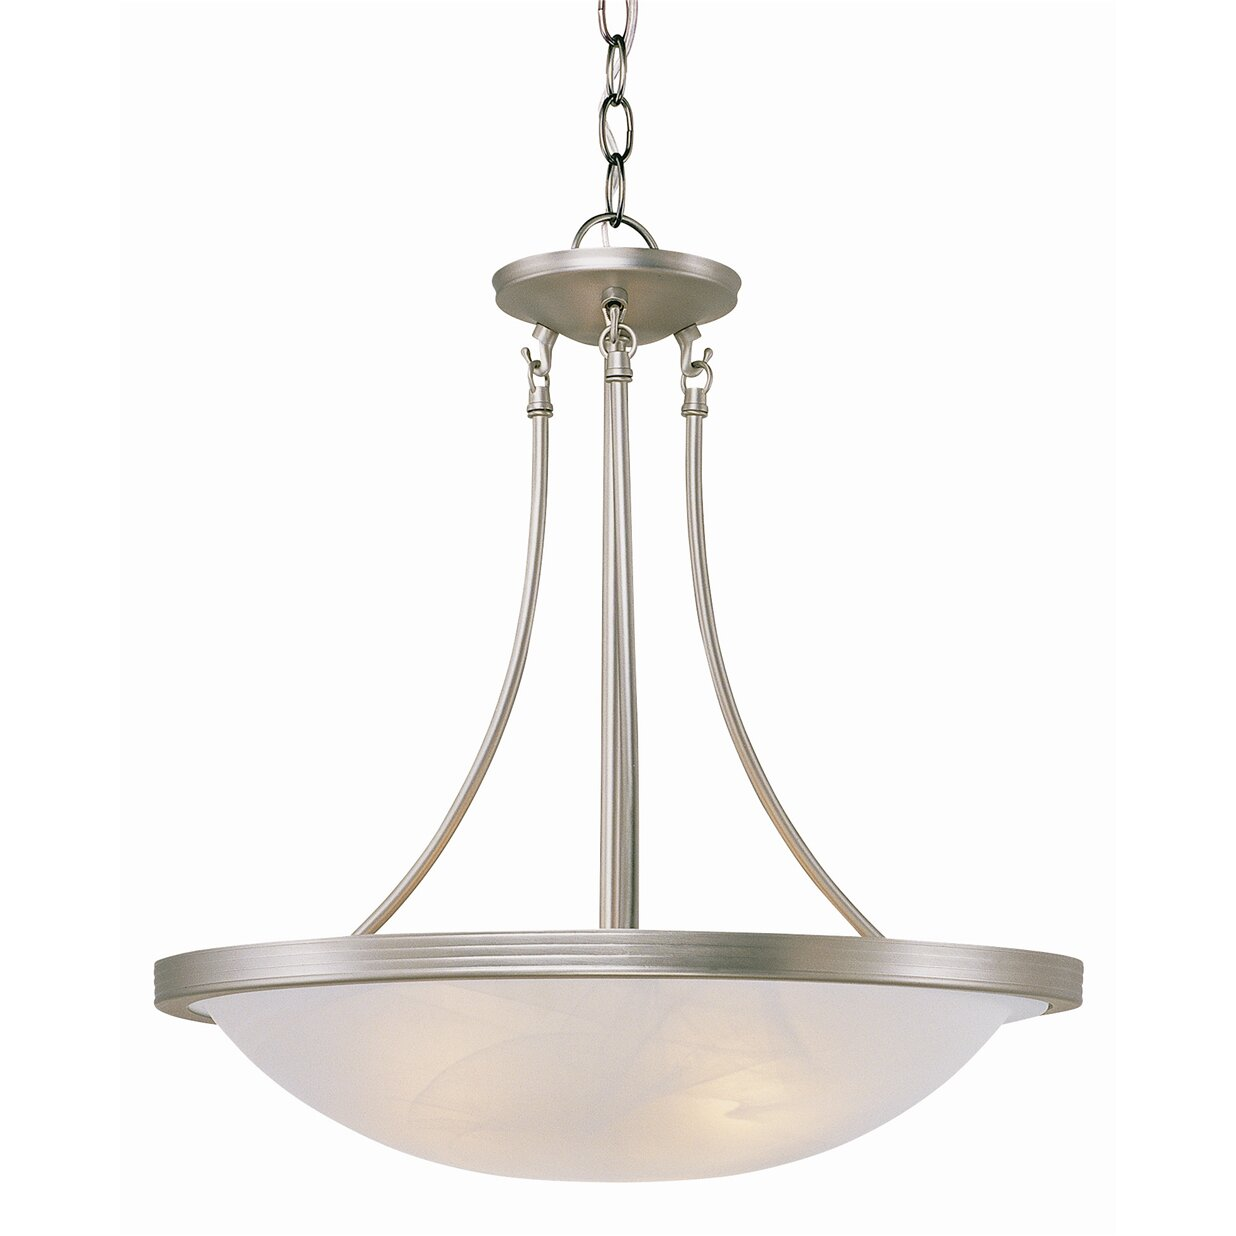 Inverted Pendant Lighting For Kitchen